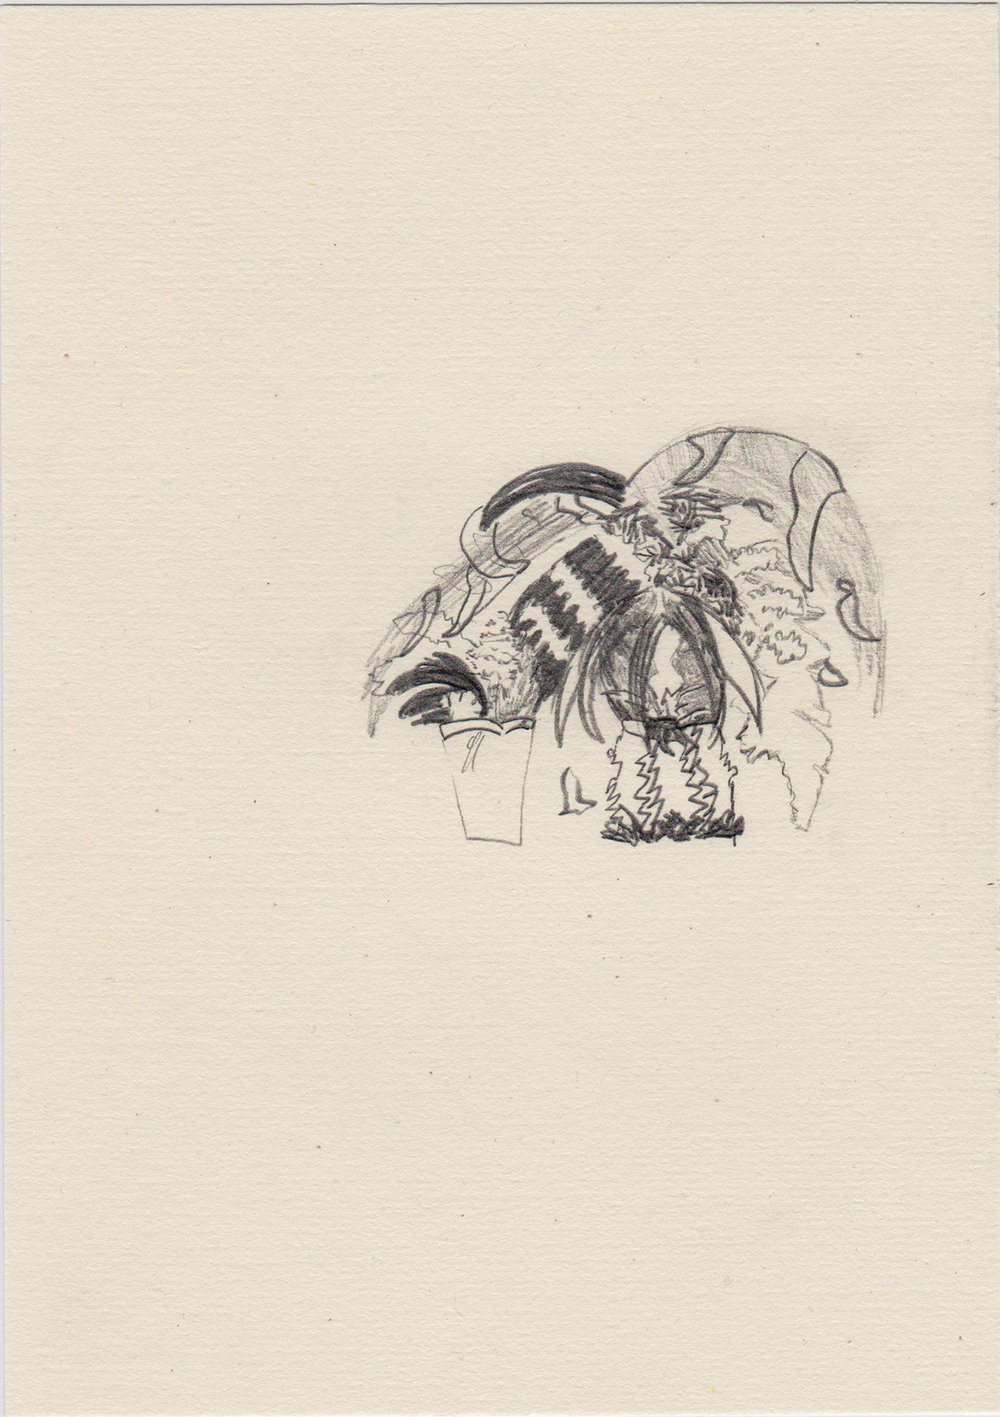 The garden of the mystic past, 2015; Pencil on paper; 20 x 14,5 cm